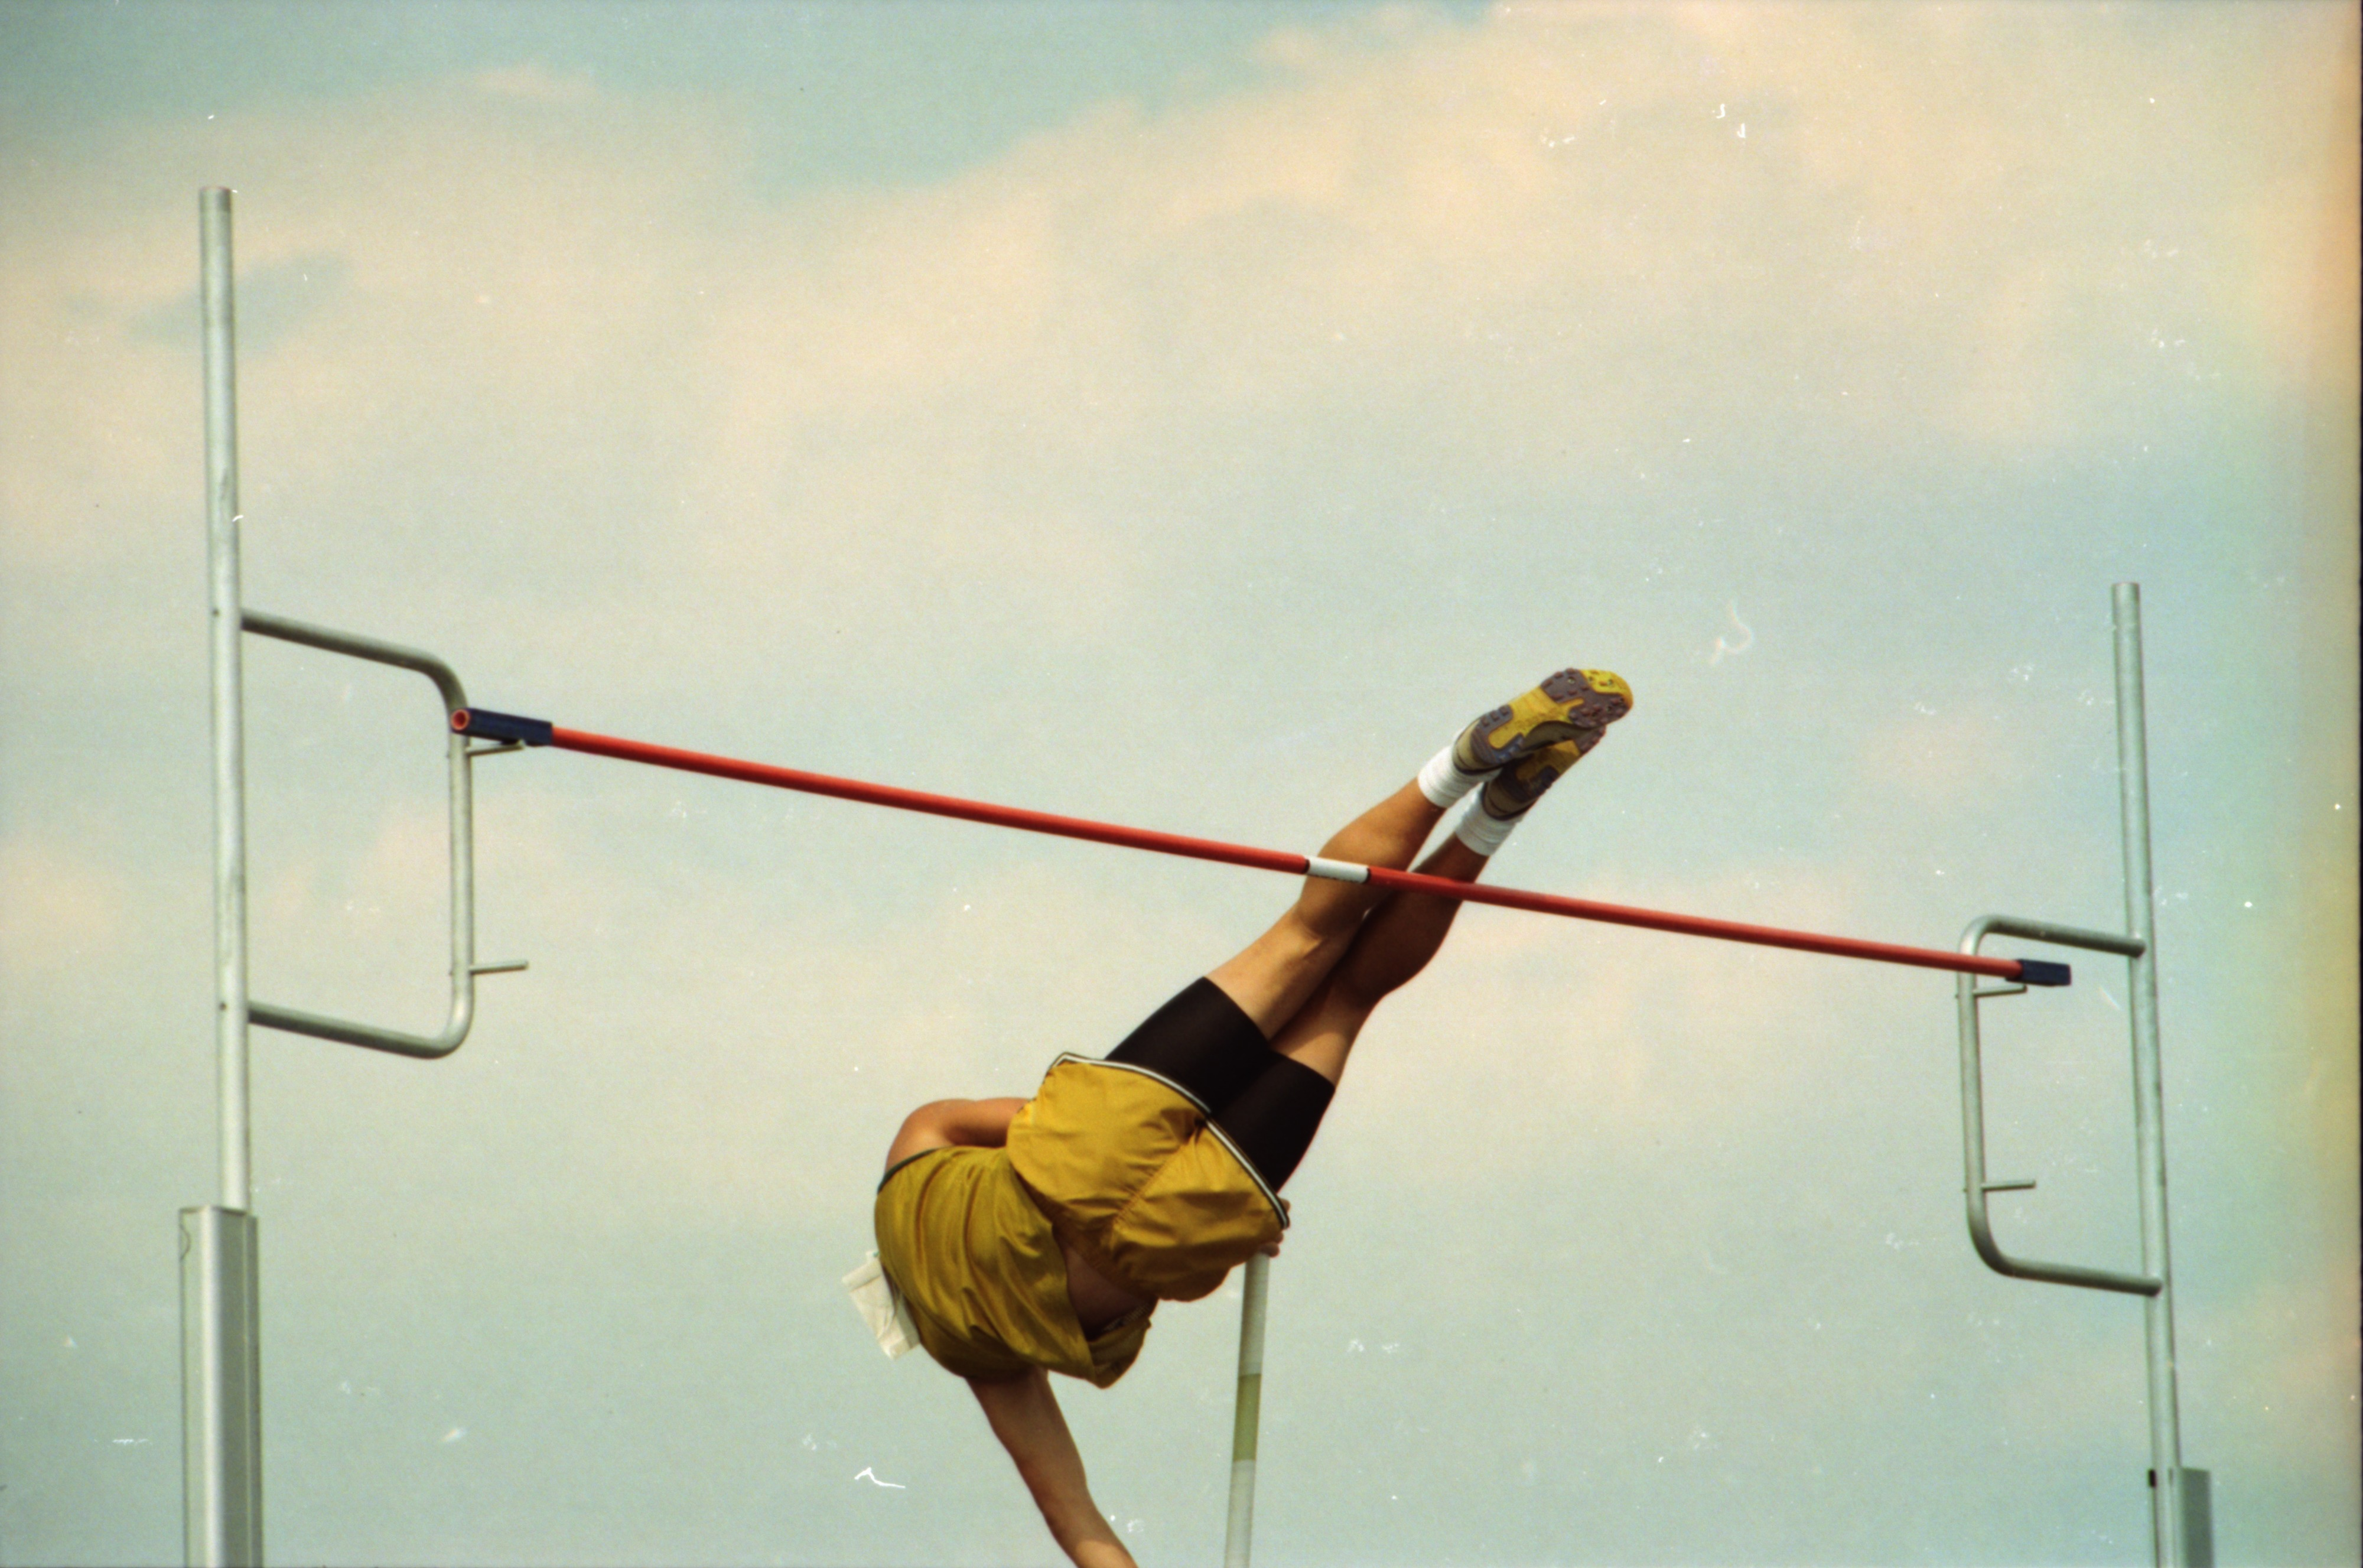 Pole Vault at Boys' State Track Meet, June 1994 image